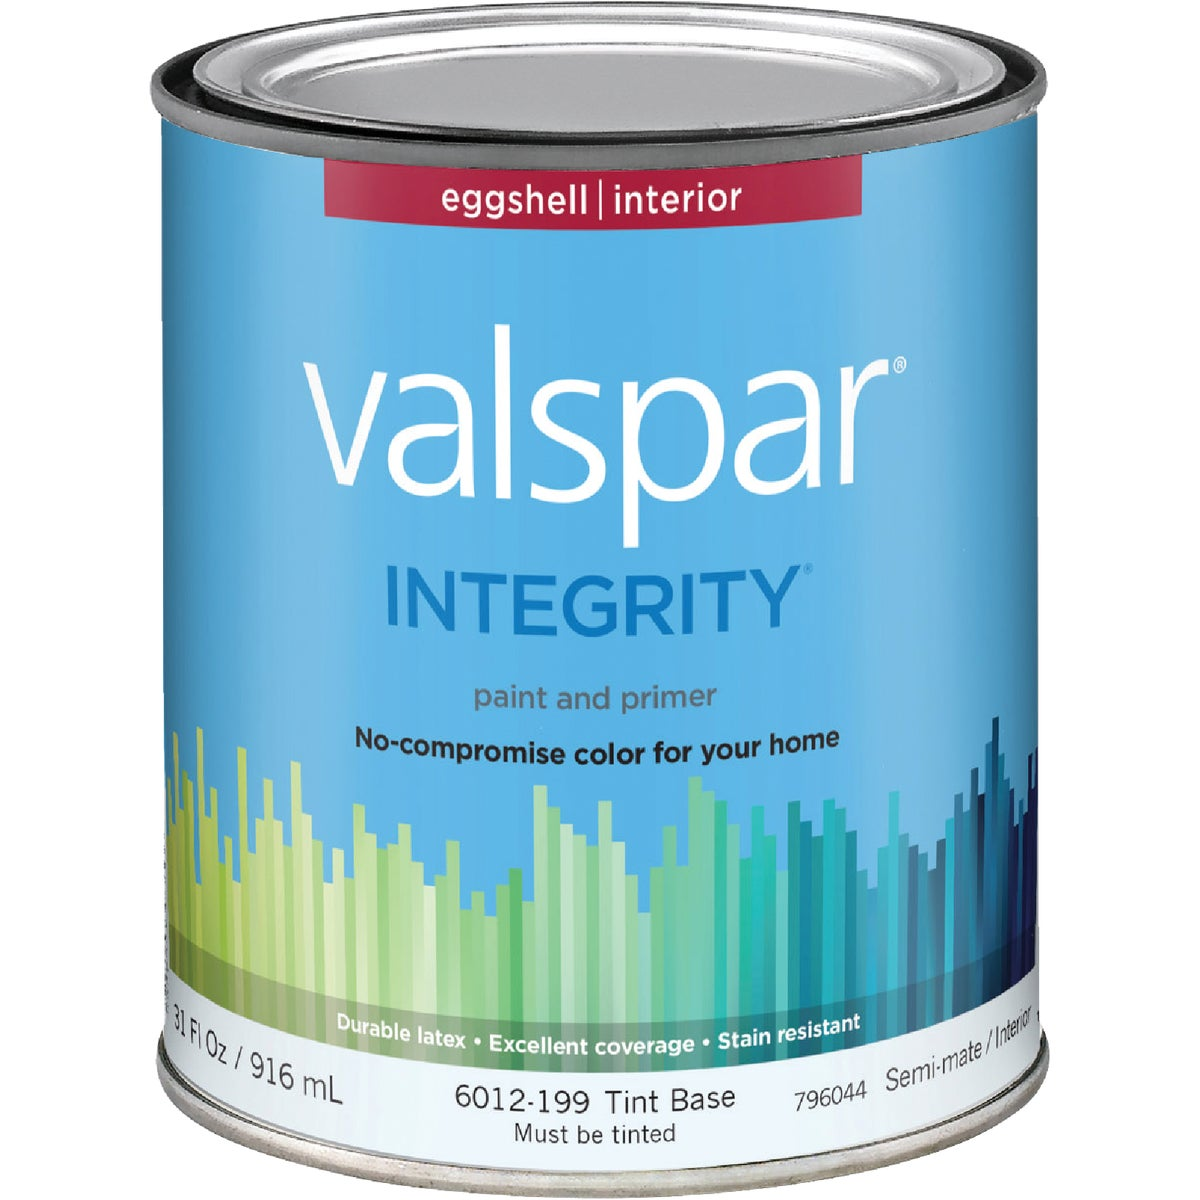 INT EGG TINT BS PAINT - 004.6012199.005 by Valspar Corp